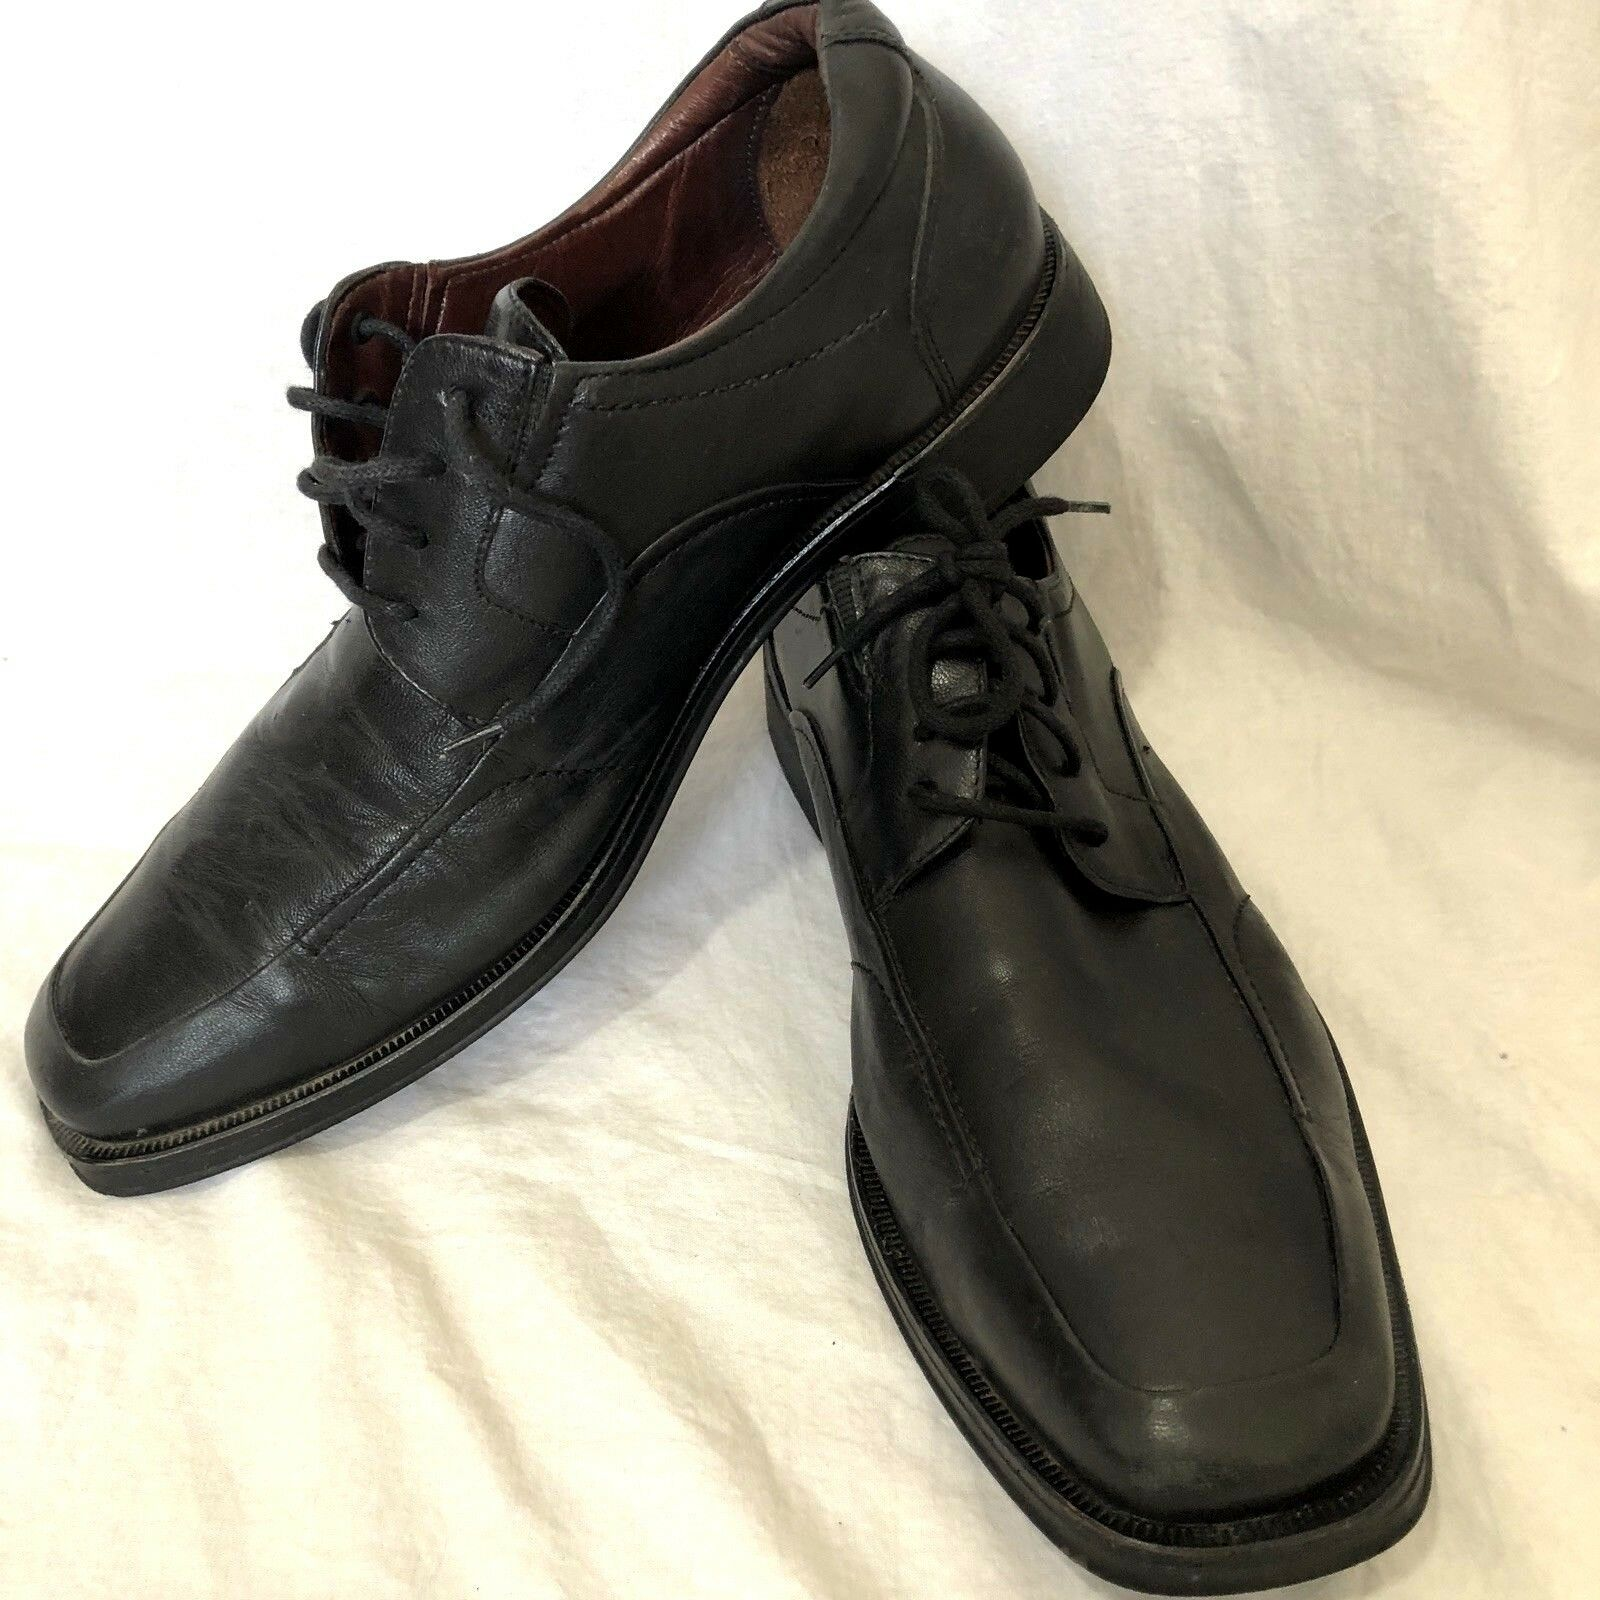 230192e2f8b Johnson Johnson Johnson   Murphy Men s Lace Up Oxfords Black Size 10 Made  in Brazil a3edbc ...